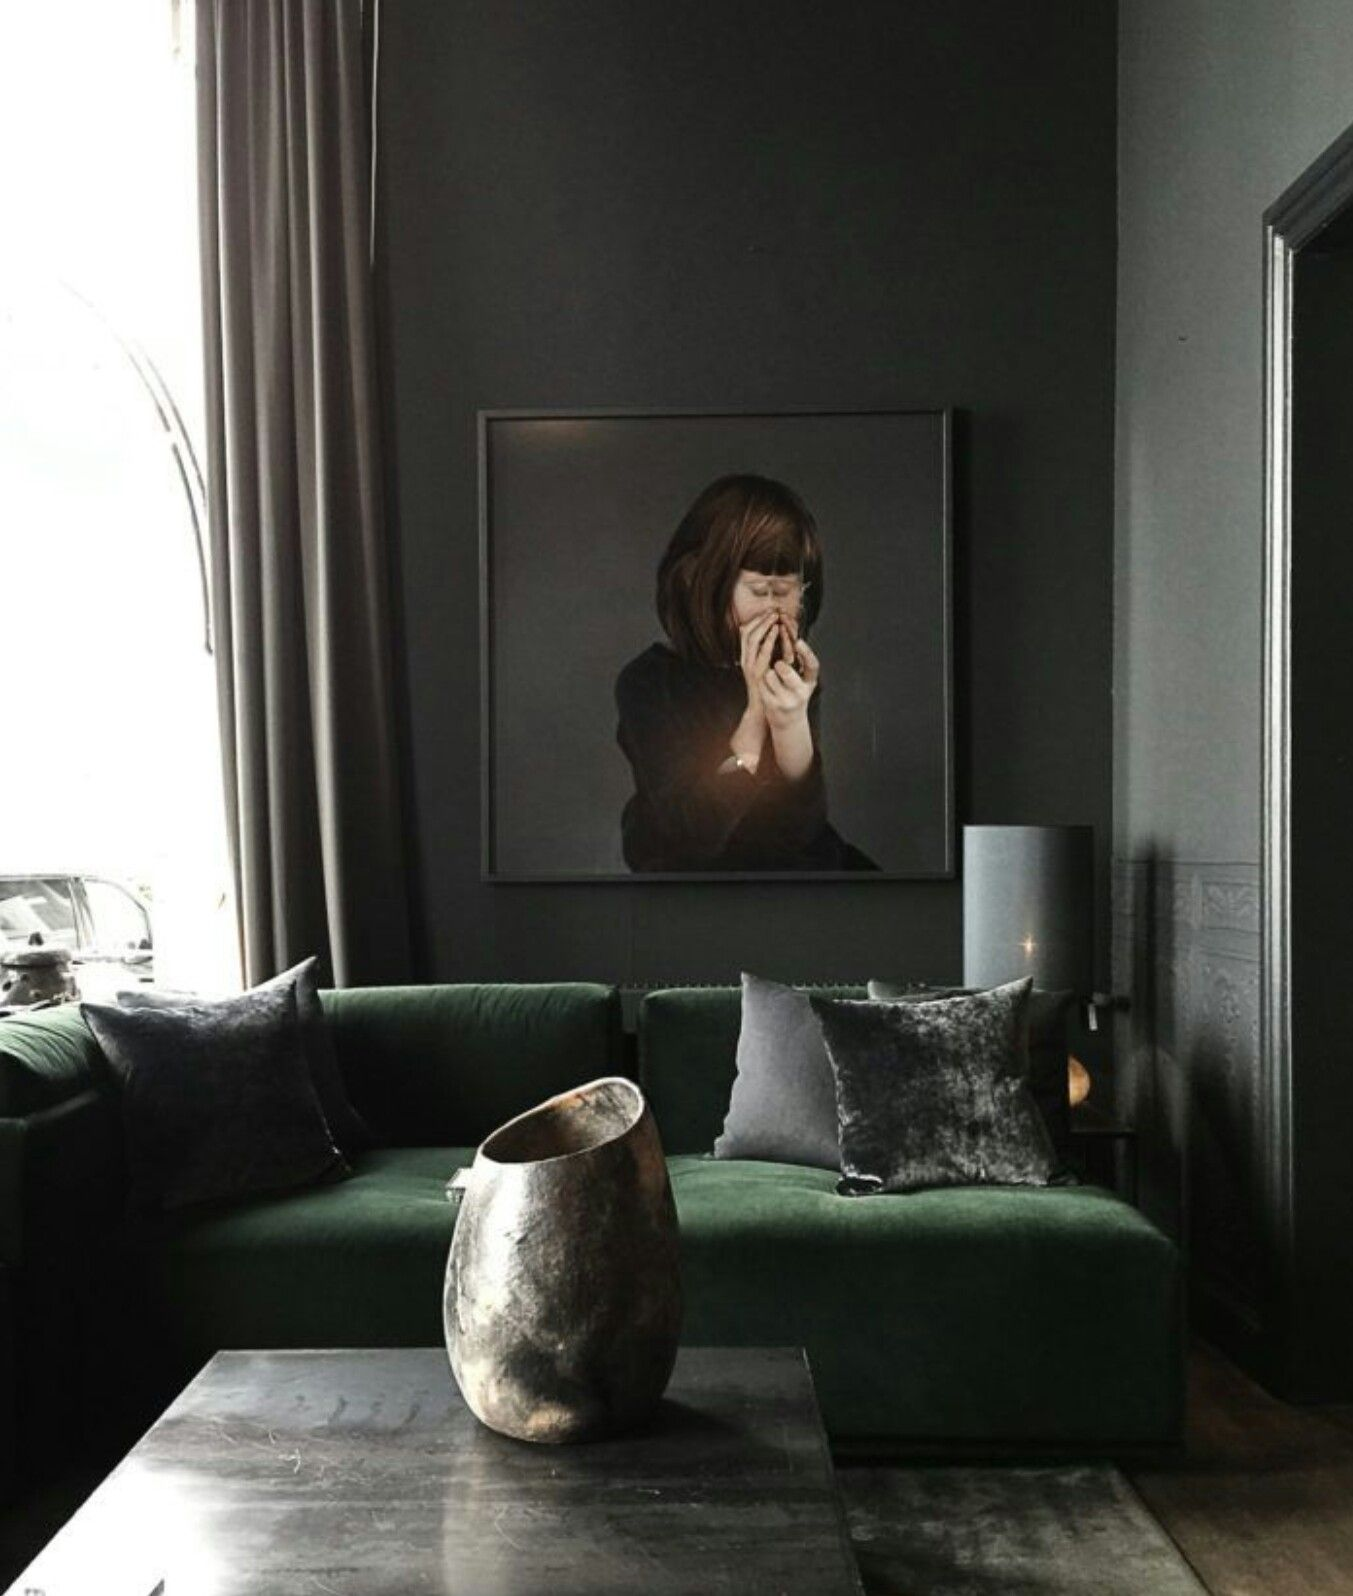 5 Bold Ways To Decorate With Velvet, A Post By Cleshawn Montague On The  Edit. Velvet Is This Seasonu0027s Hottest Trend. Here Are Five Ways You Can  Incorporate ...